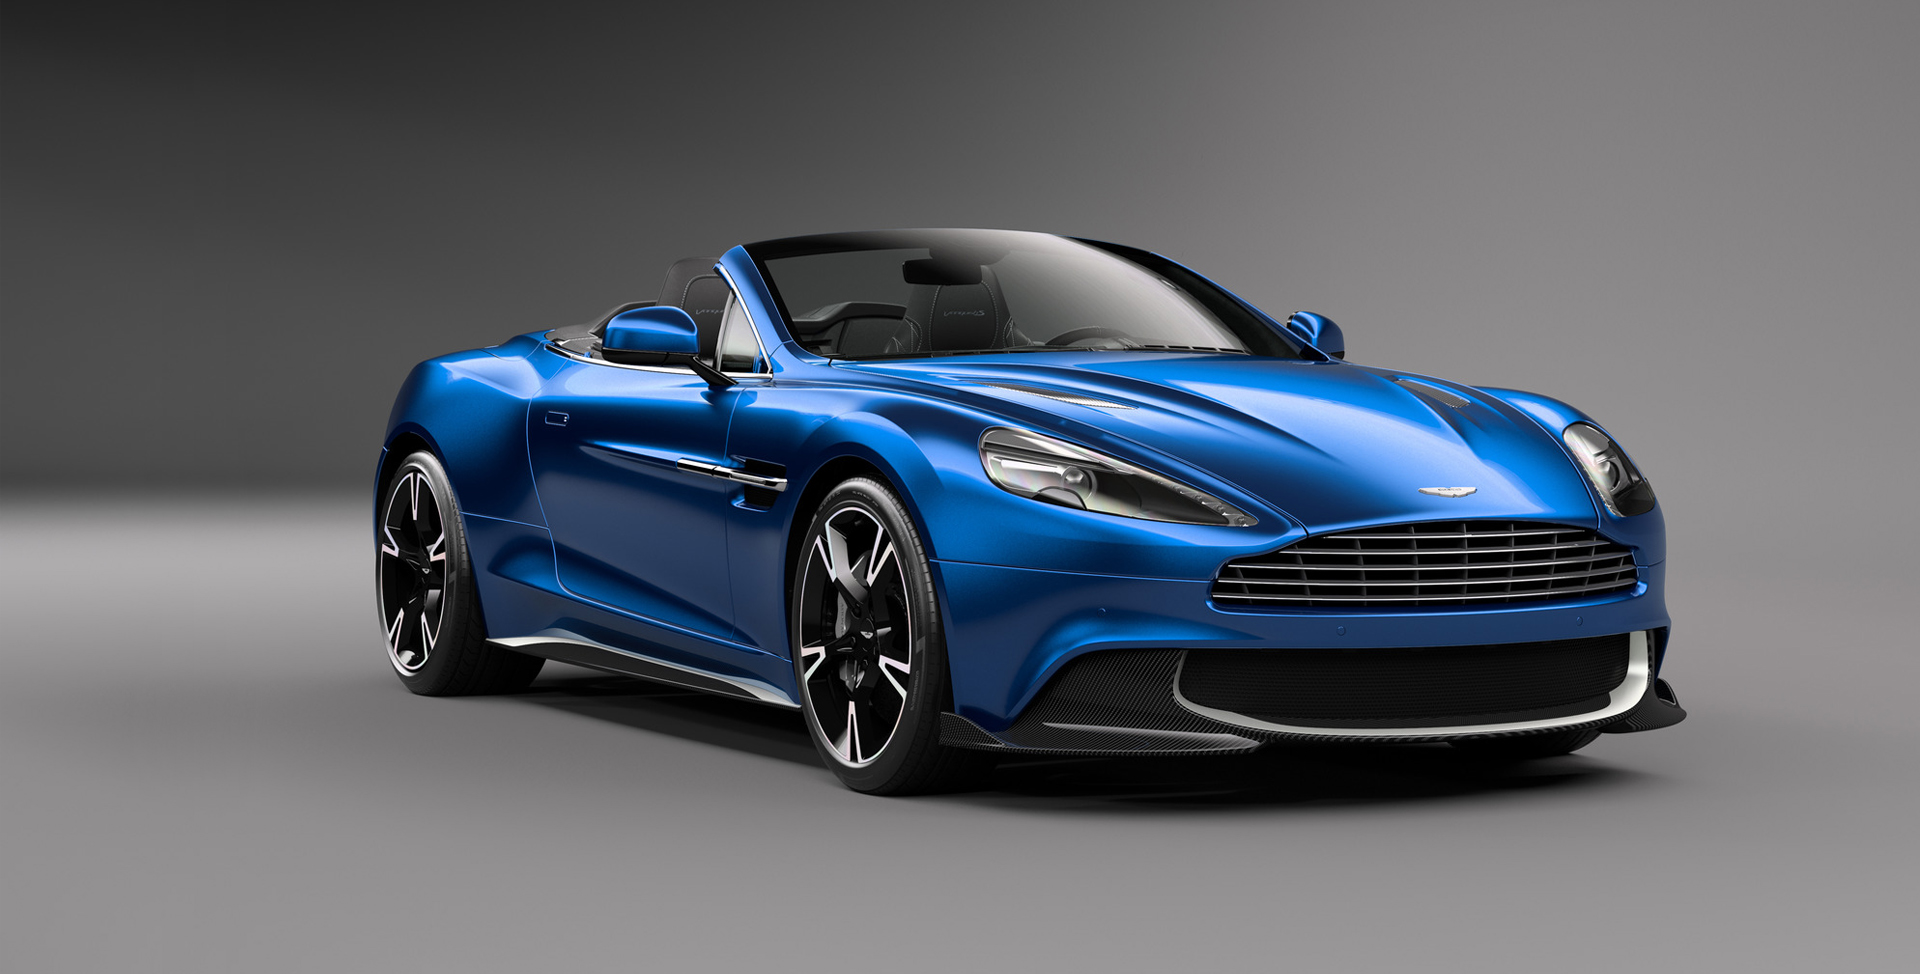 The Collection Aston Martin Vanquish